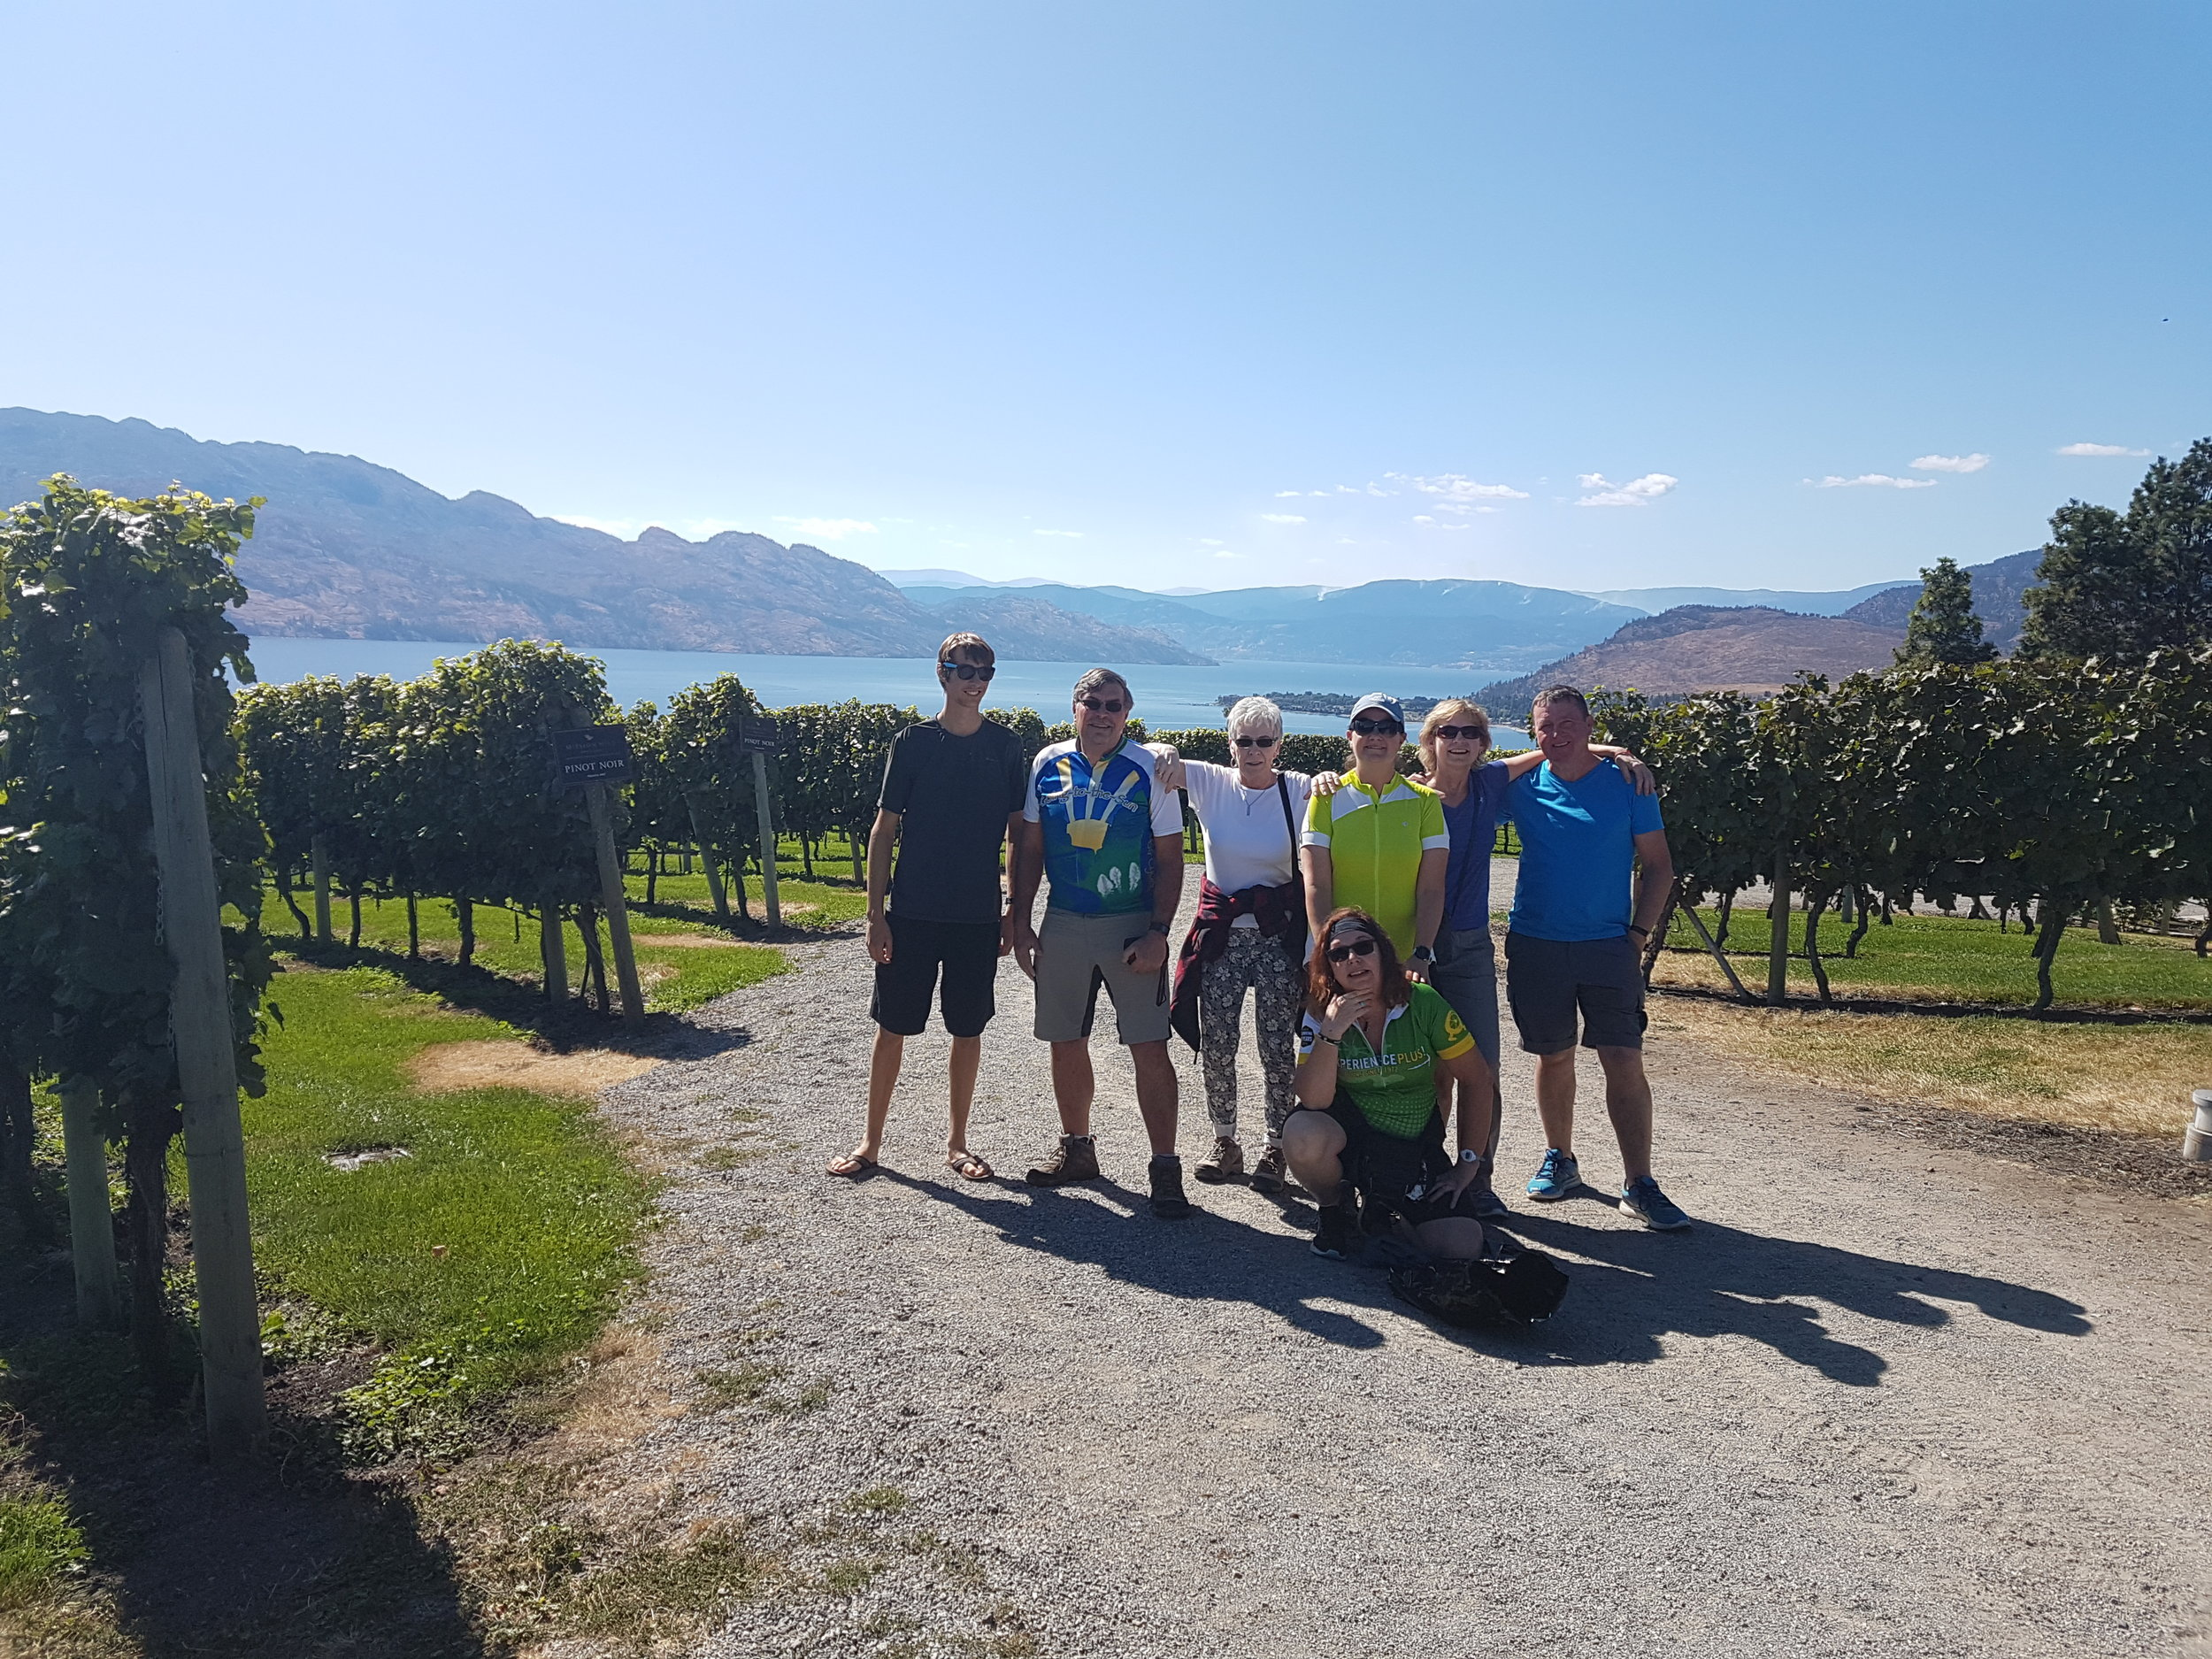 Group photo at one of the wineries during our Okanagan bike holiday